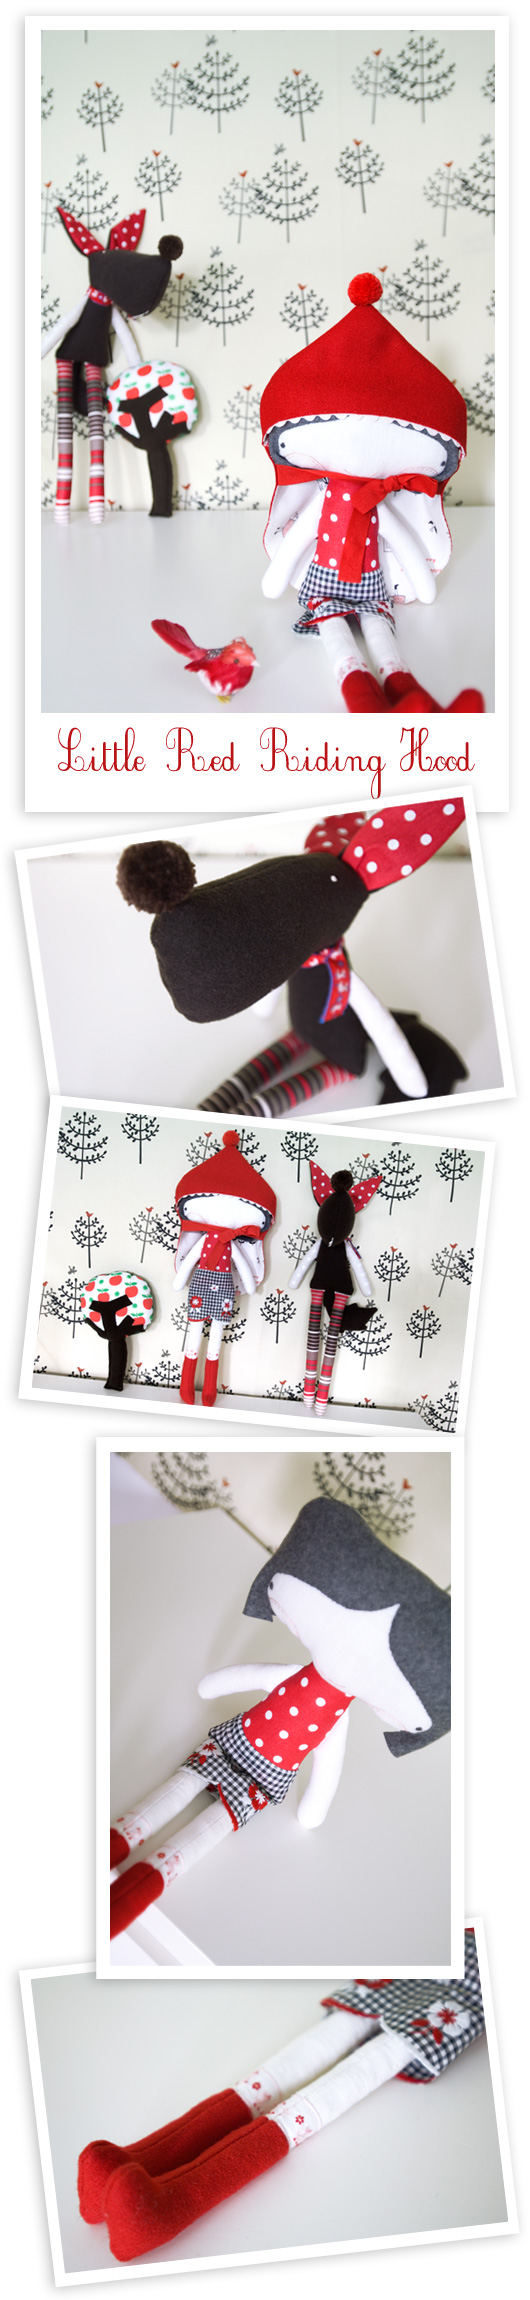 handmade softies from the tale Little Red Riding Hood